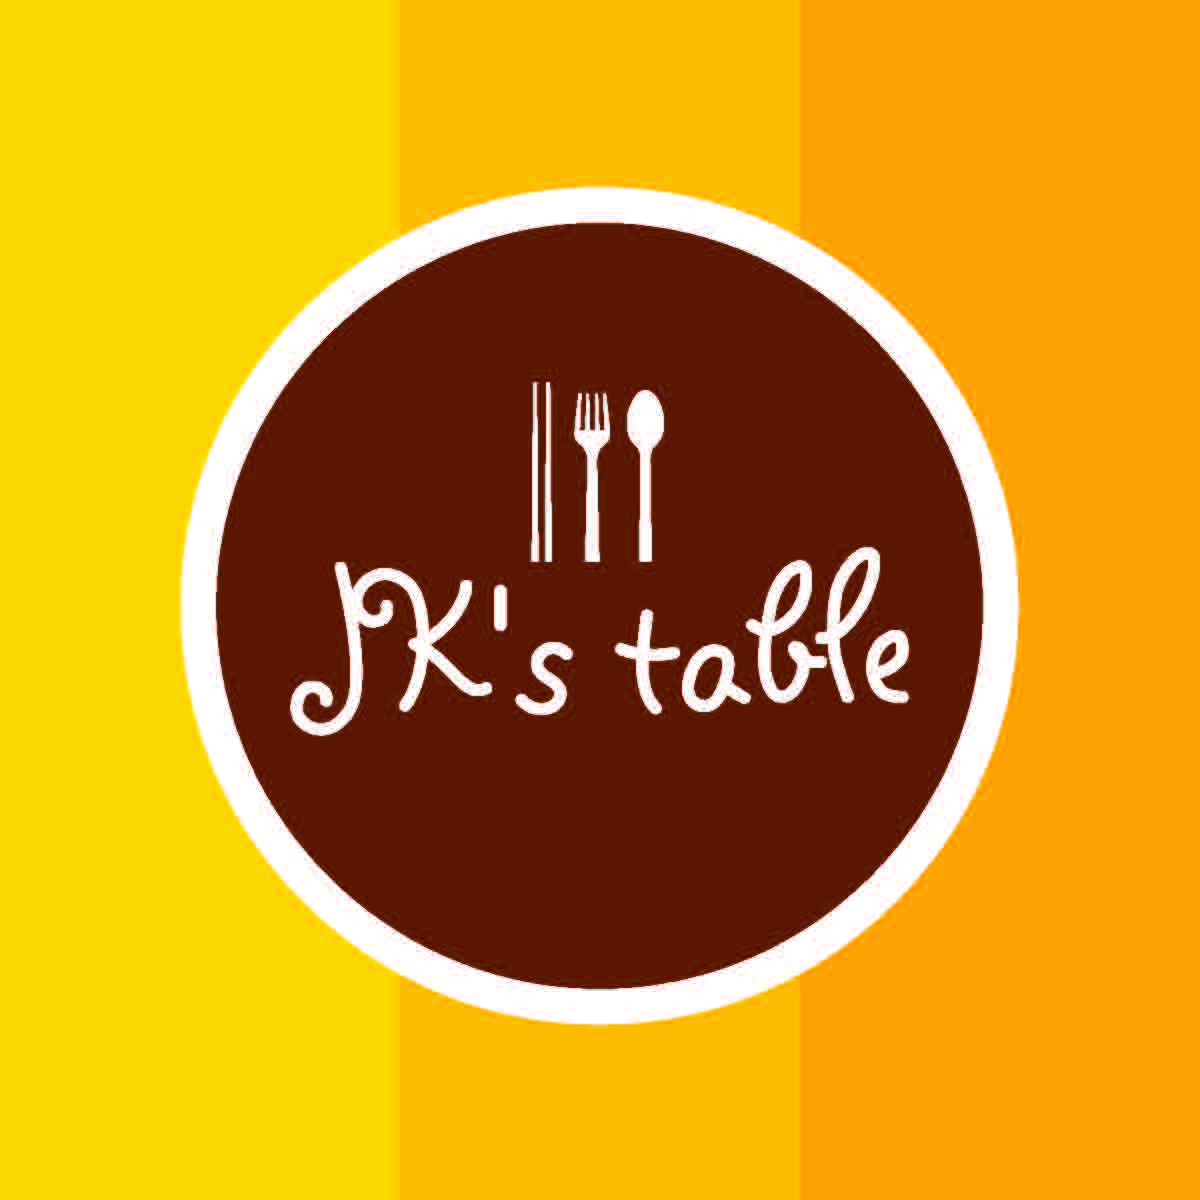 JK's Table